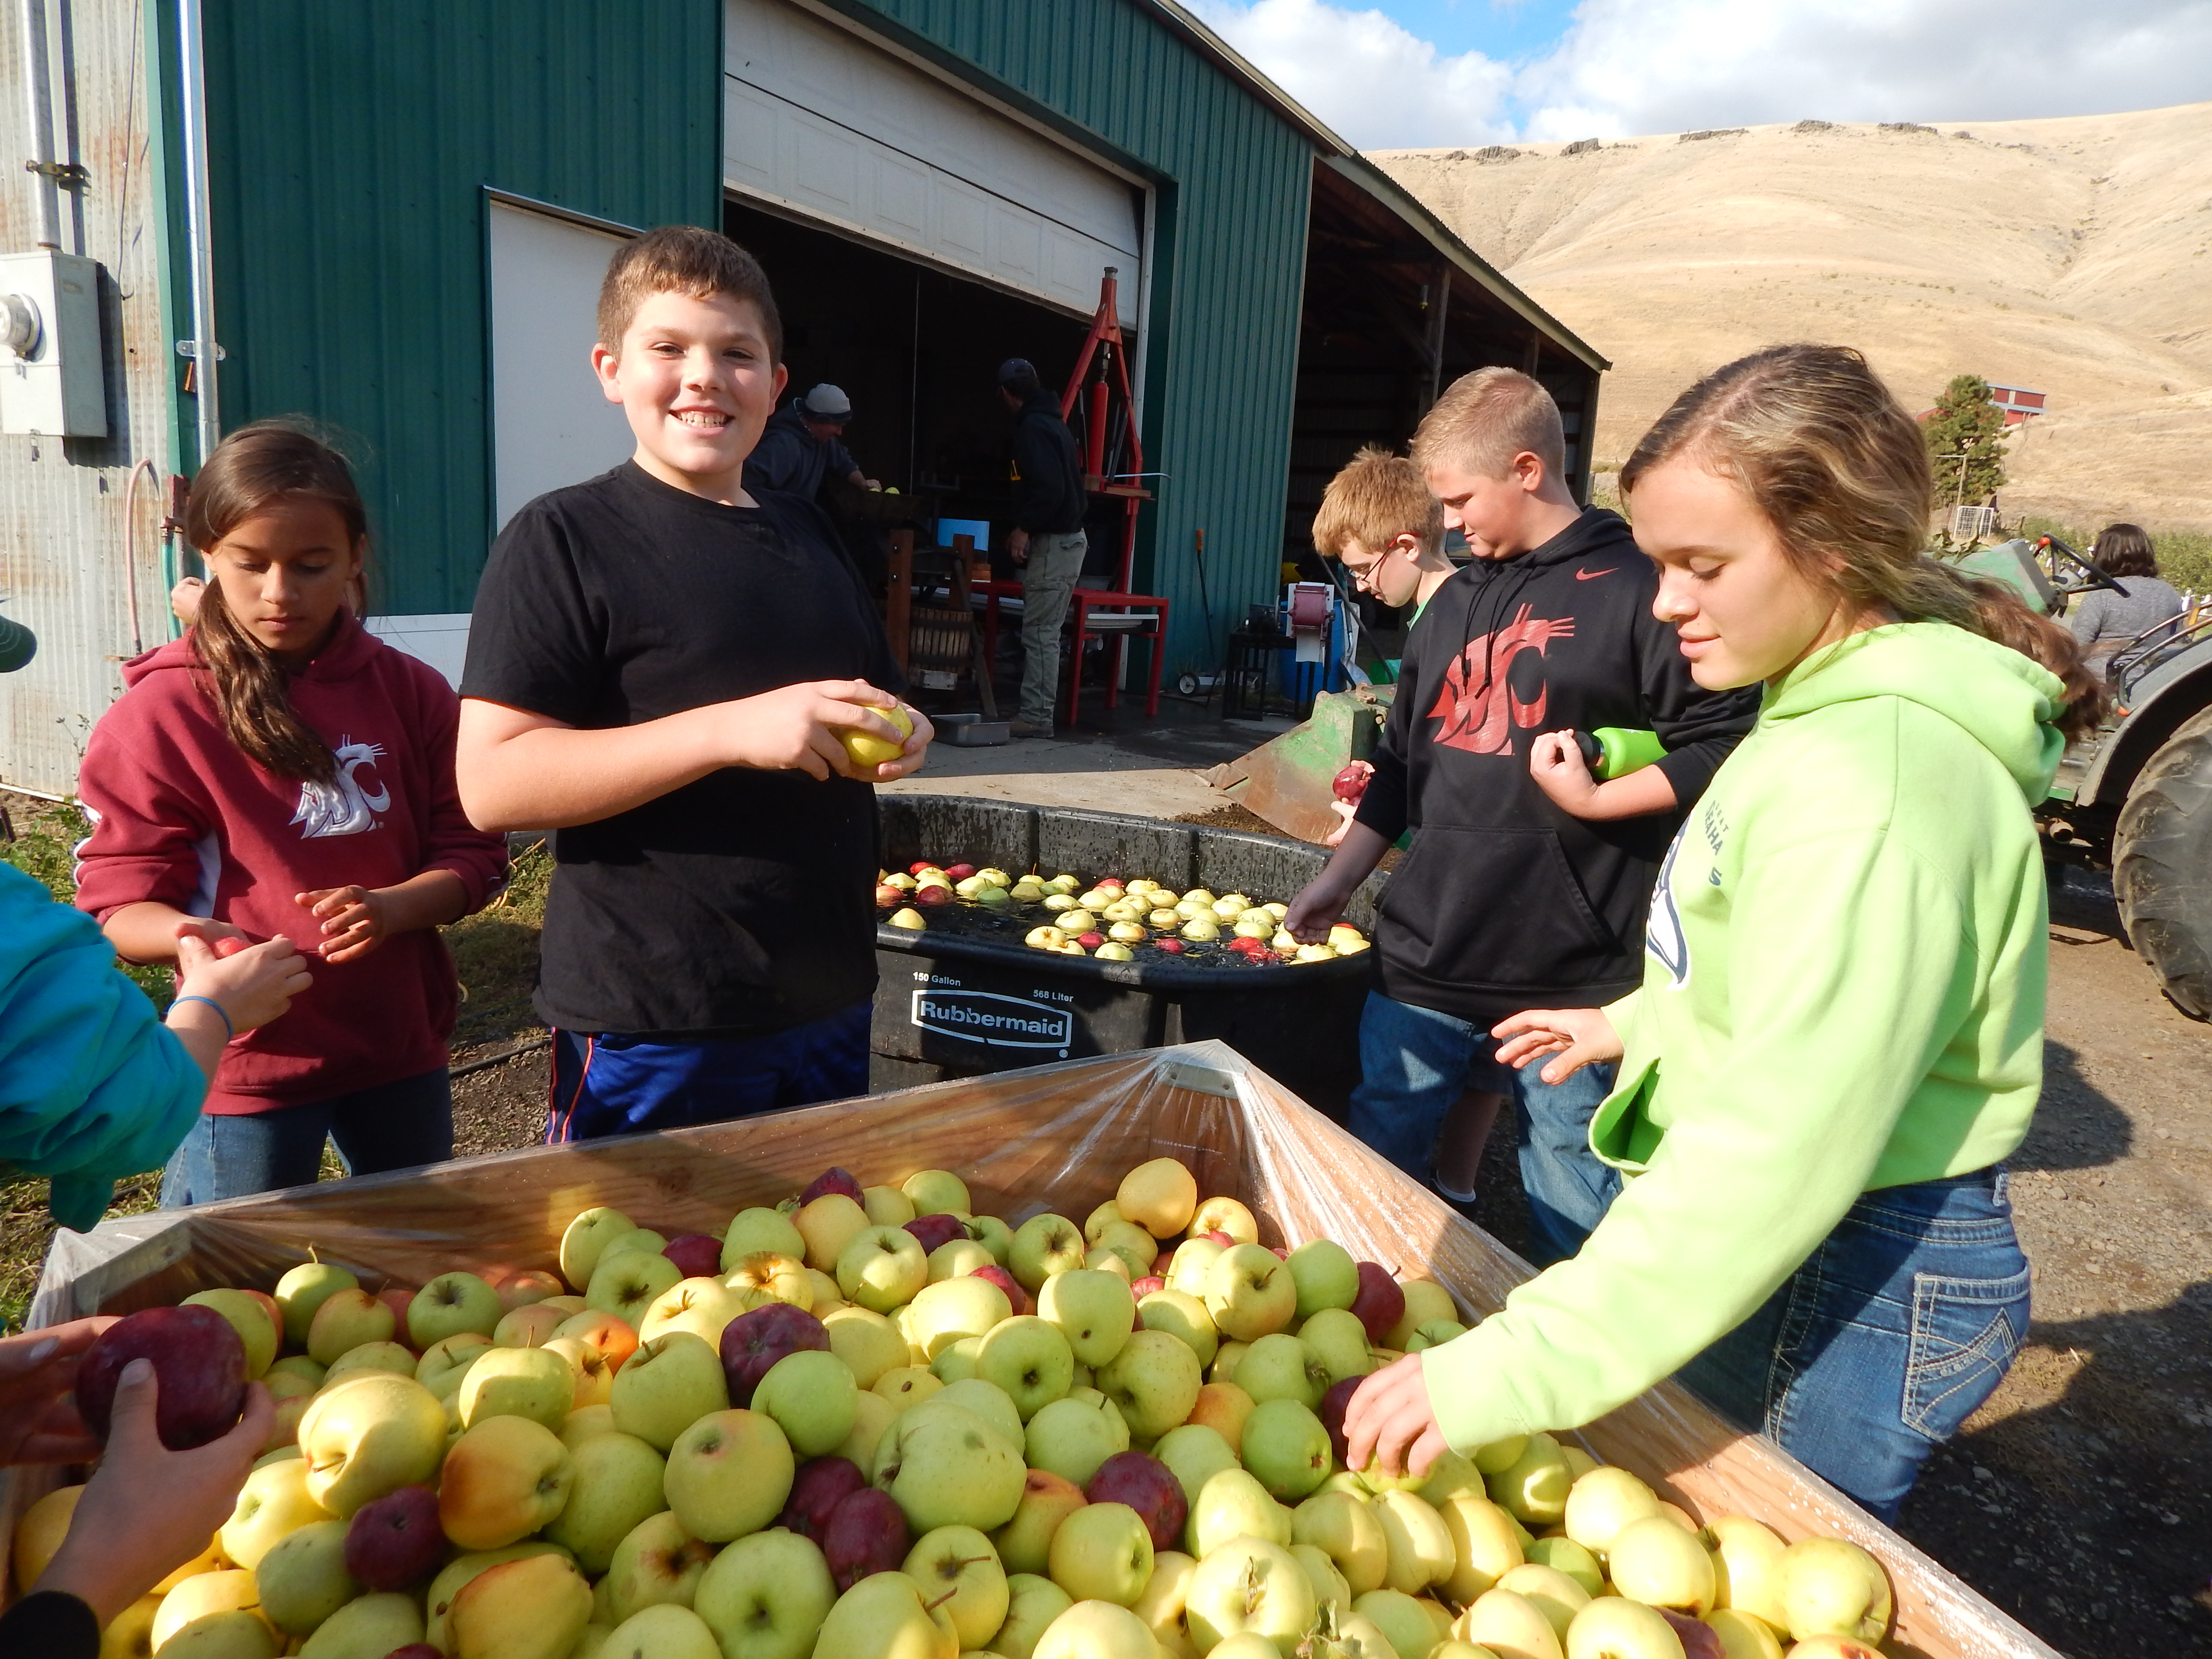 Children examining red and green apples.